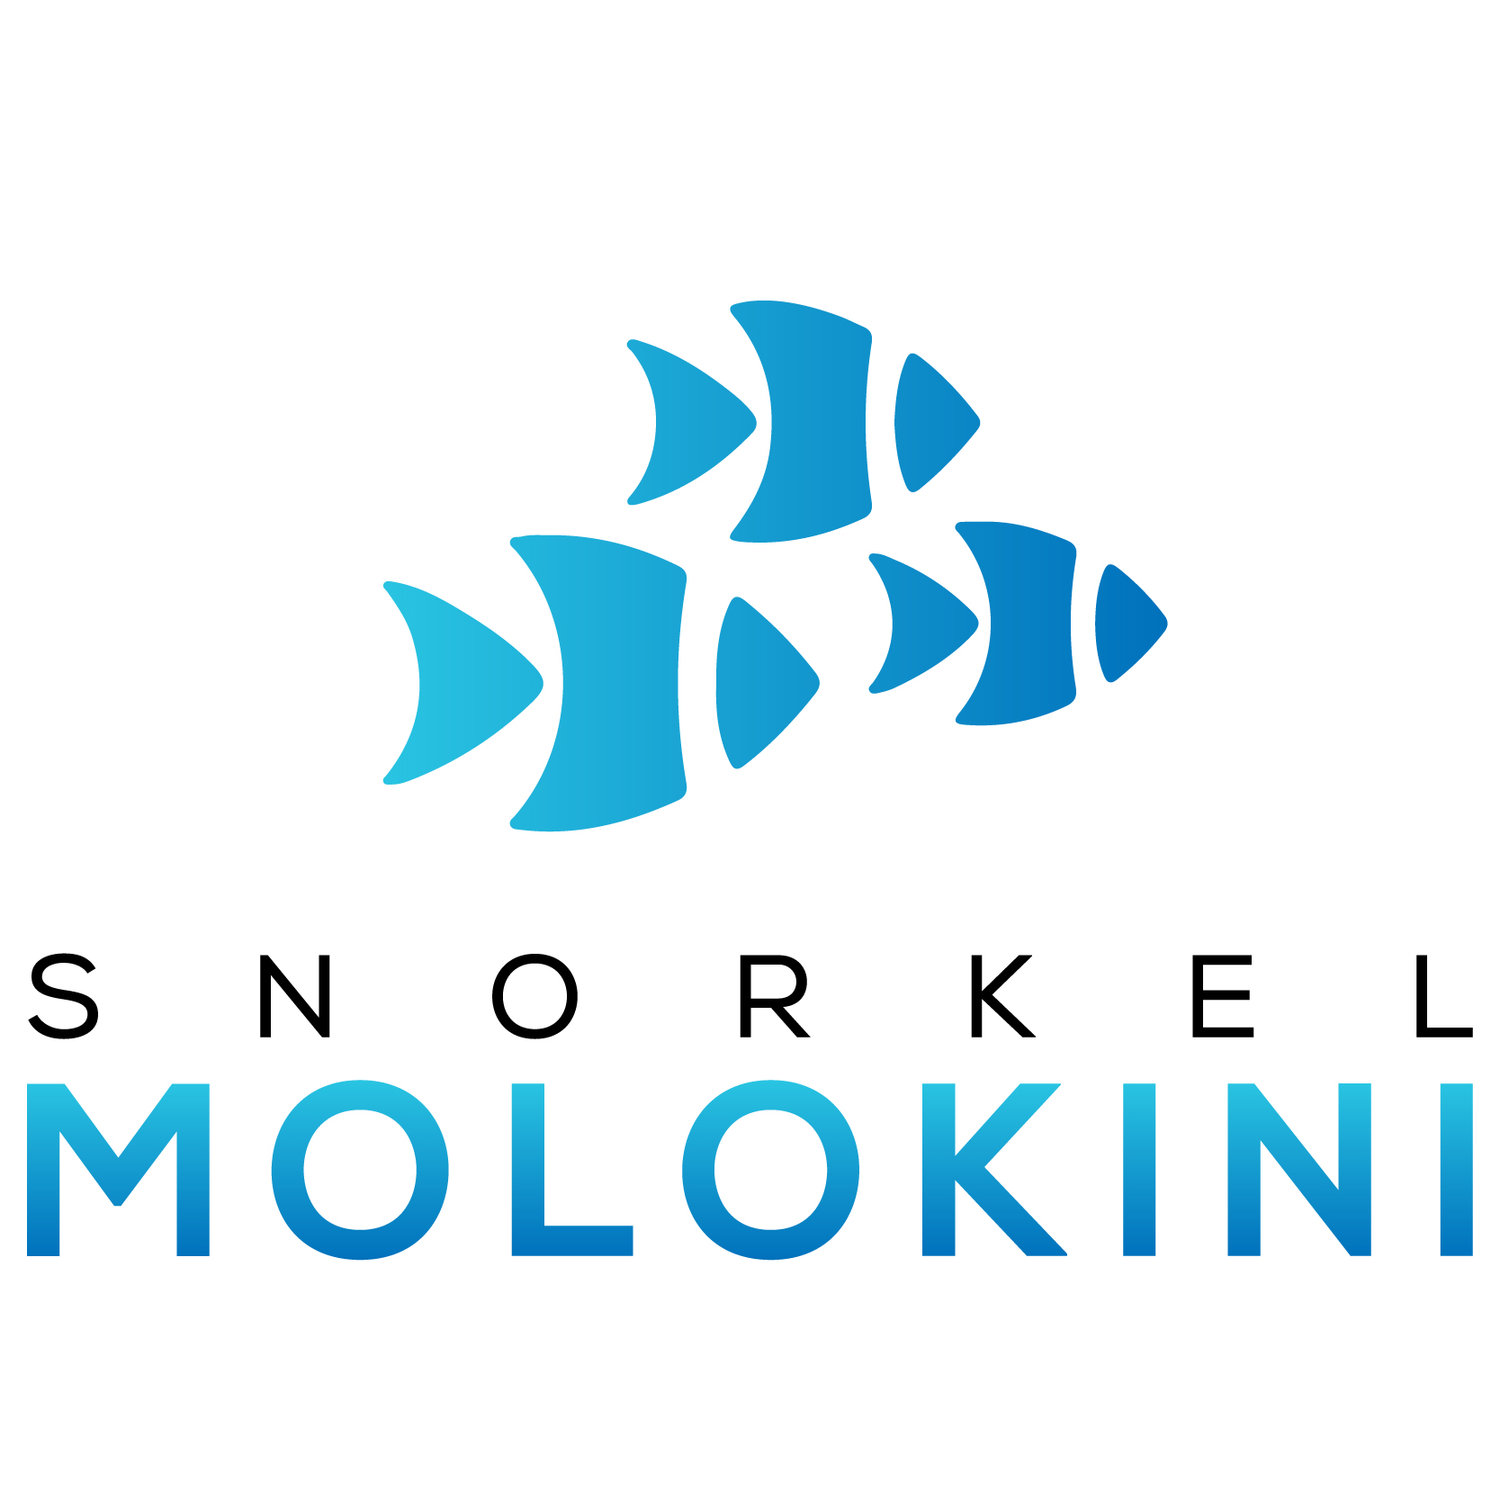 Snorkel Molokini - The Molokini Crater on Maui - Book Now!